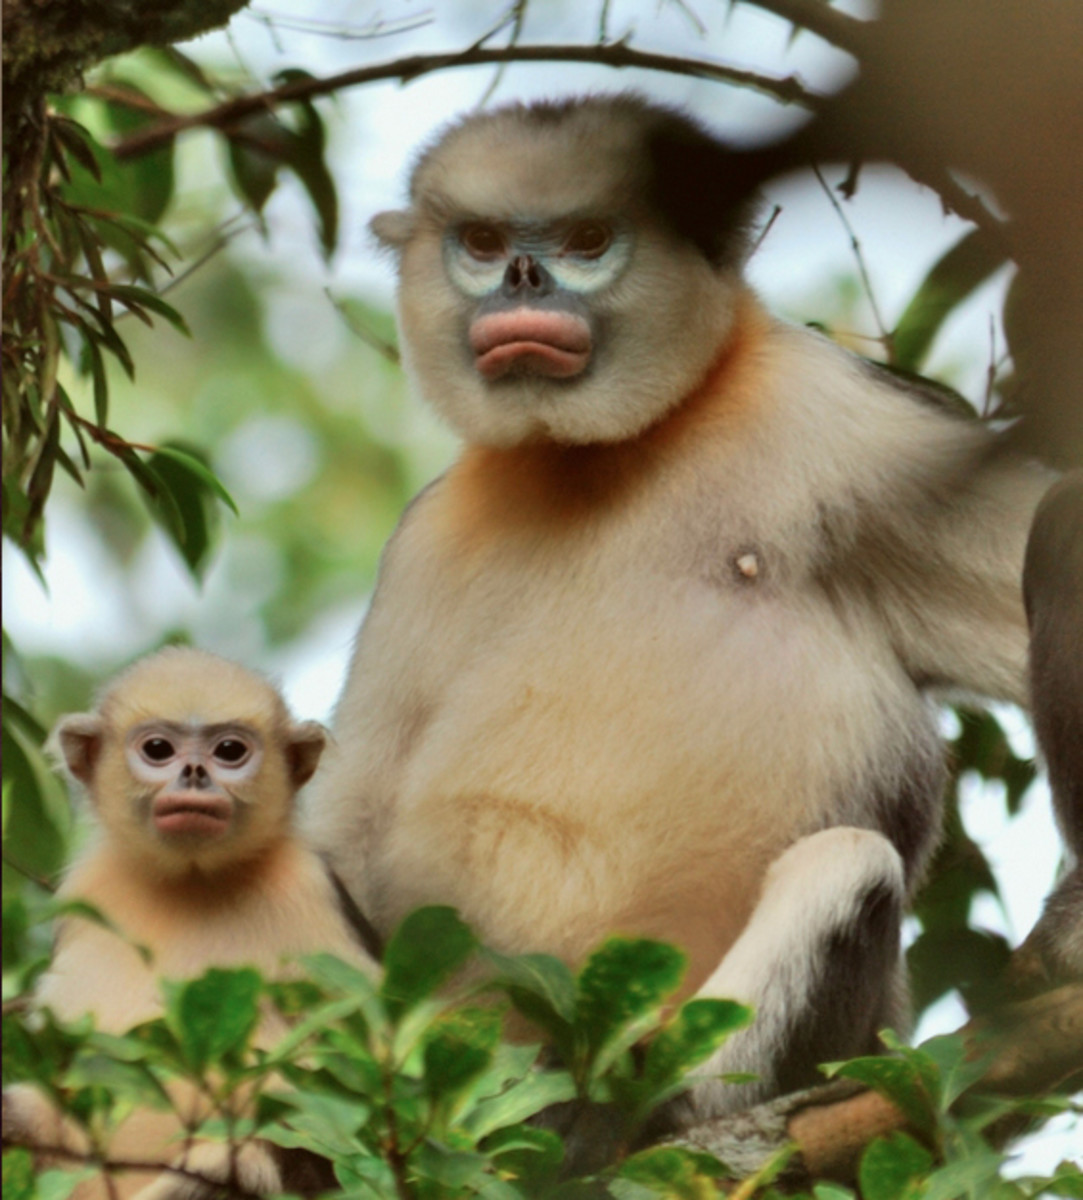 Our prime suspect: the critically endangered Tonkin snub-nosed monkey.